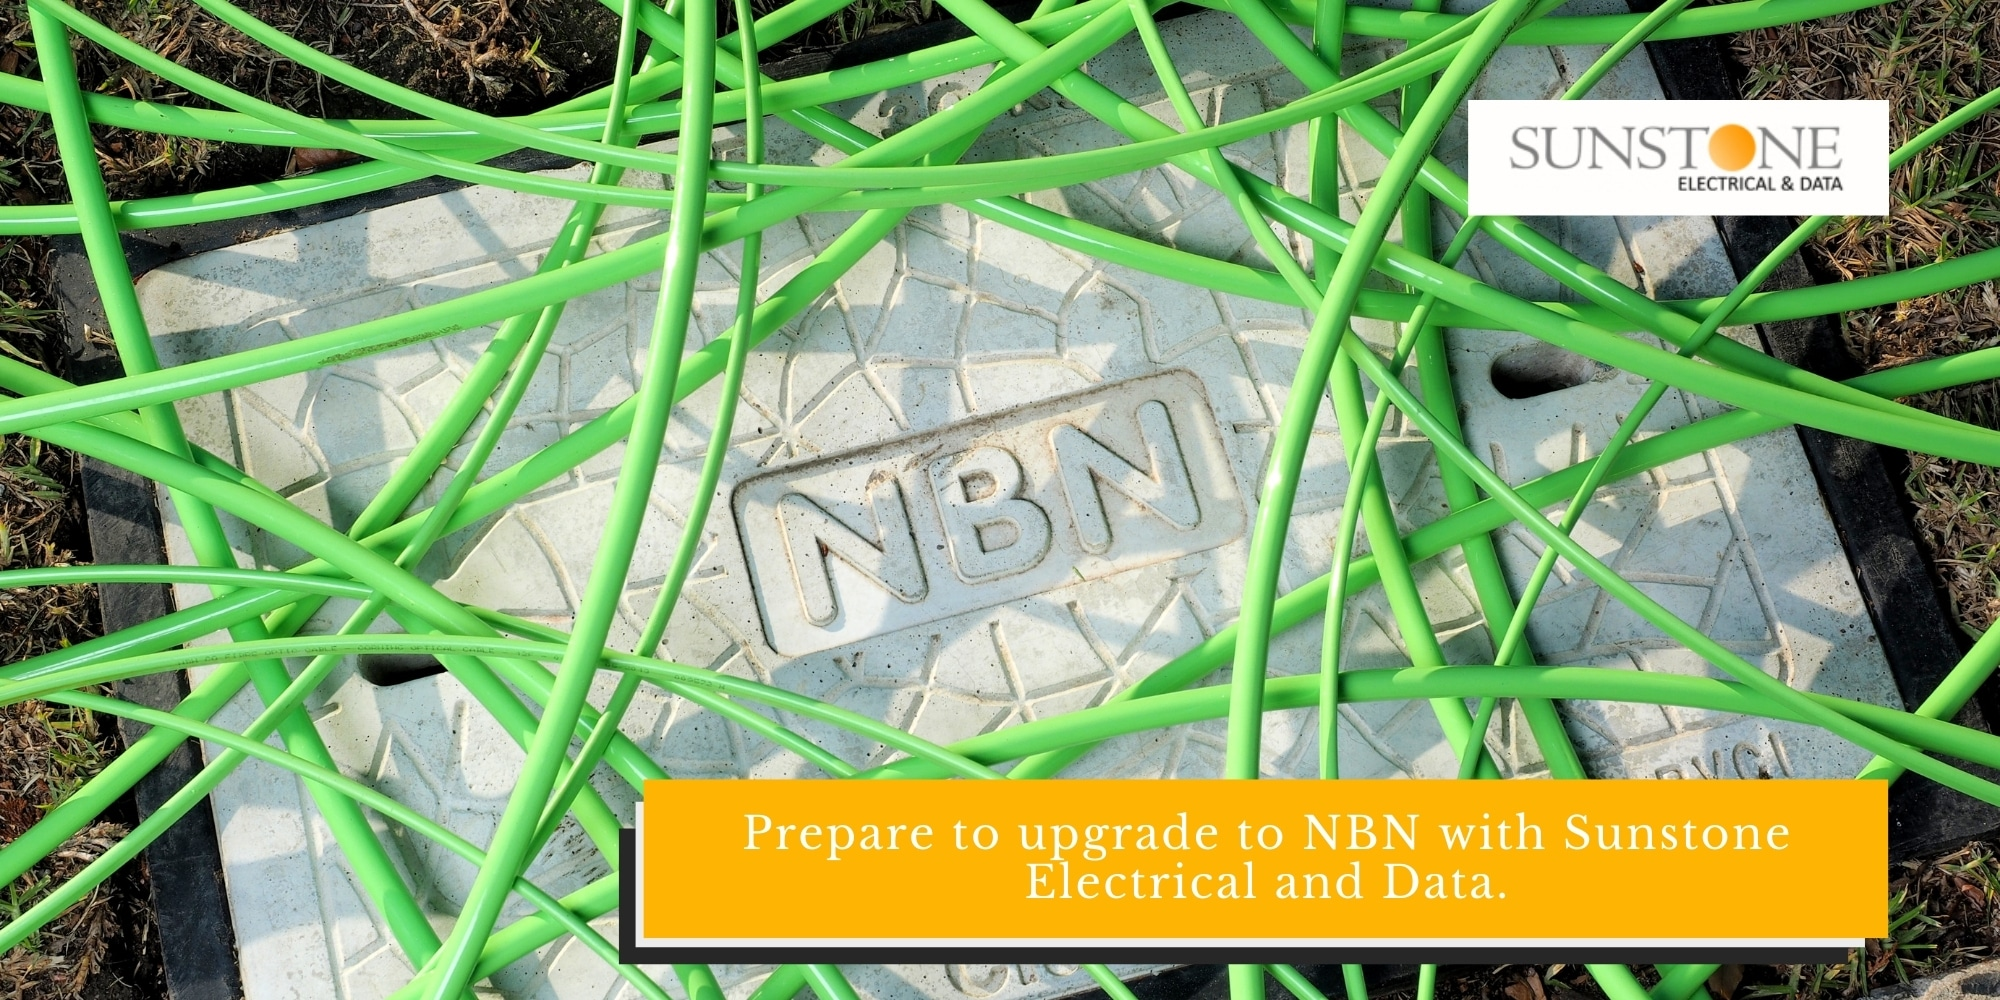 Prepare to upgrade to NBN with Sunstone Electrical and Data.